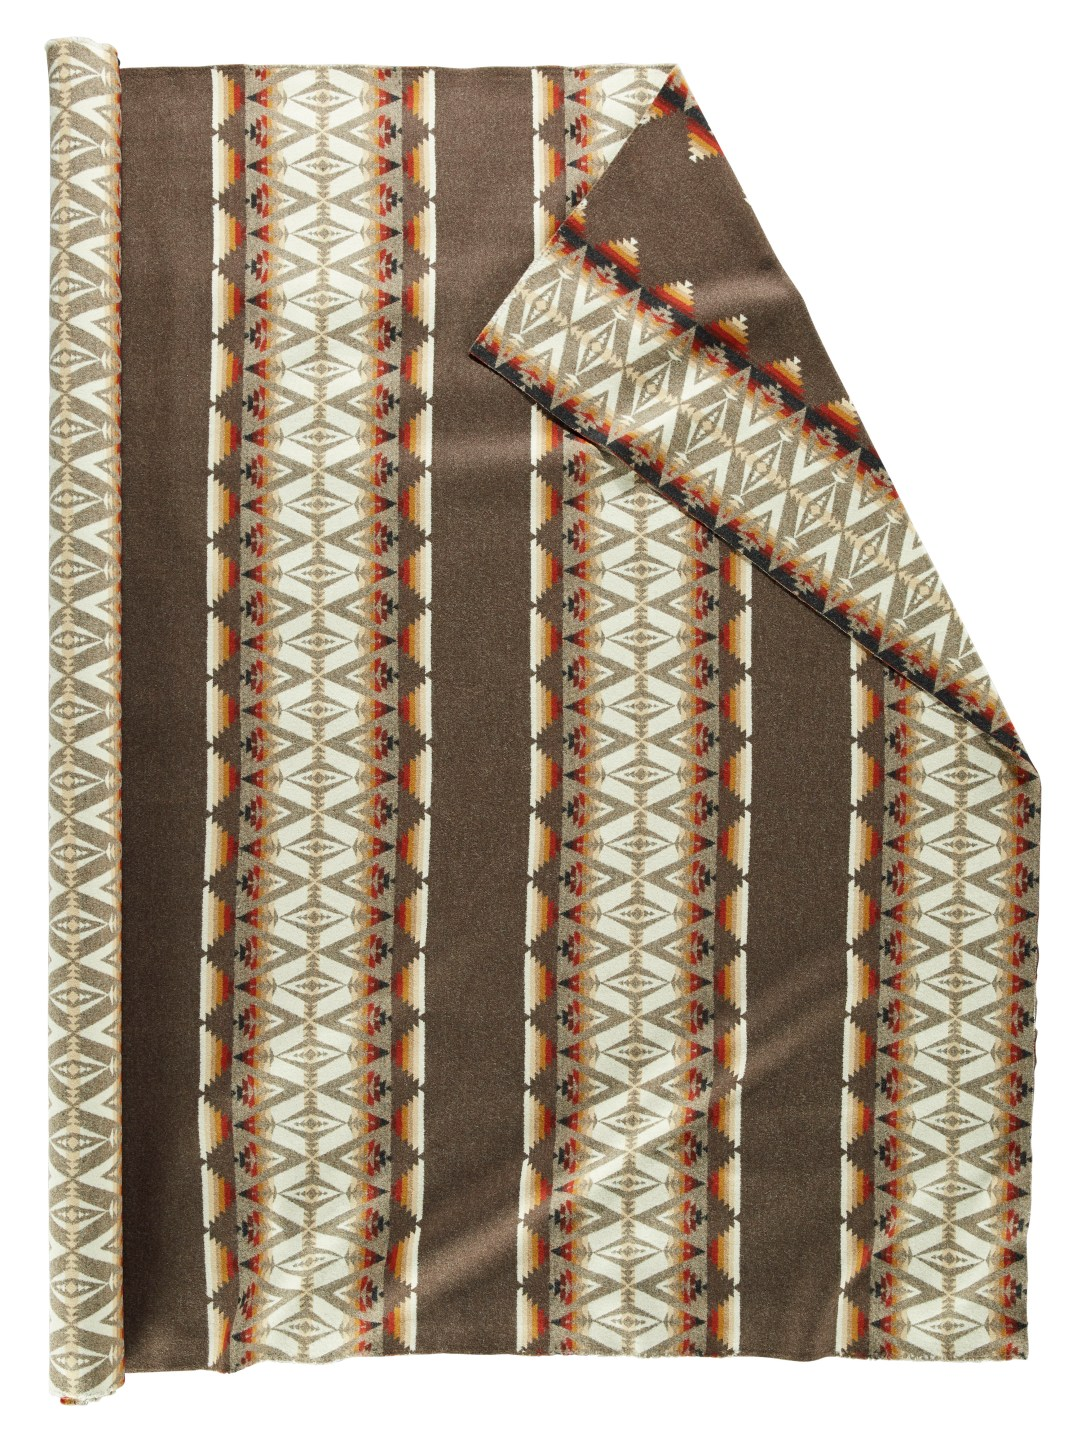 A roll of Pendleton wool fabric in Pacific Crest Brown, large horizontal stripes of light brown alternating with stripes of tree and mountain shapes in white, rust, and light brown.